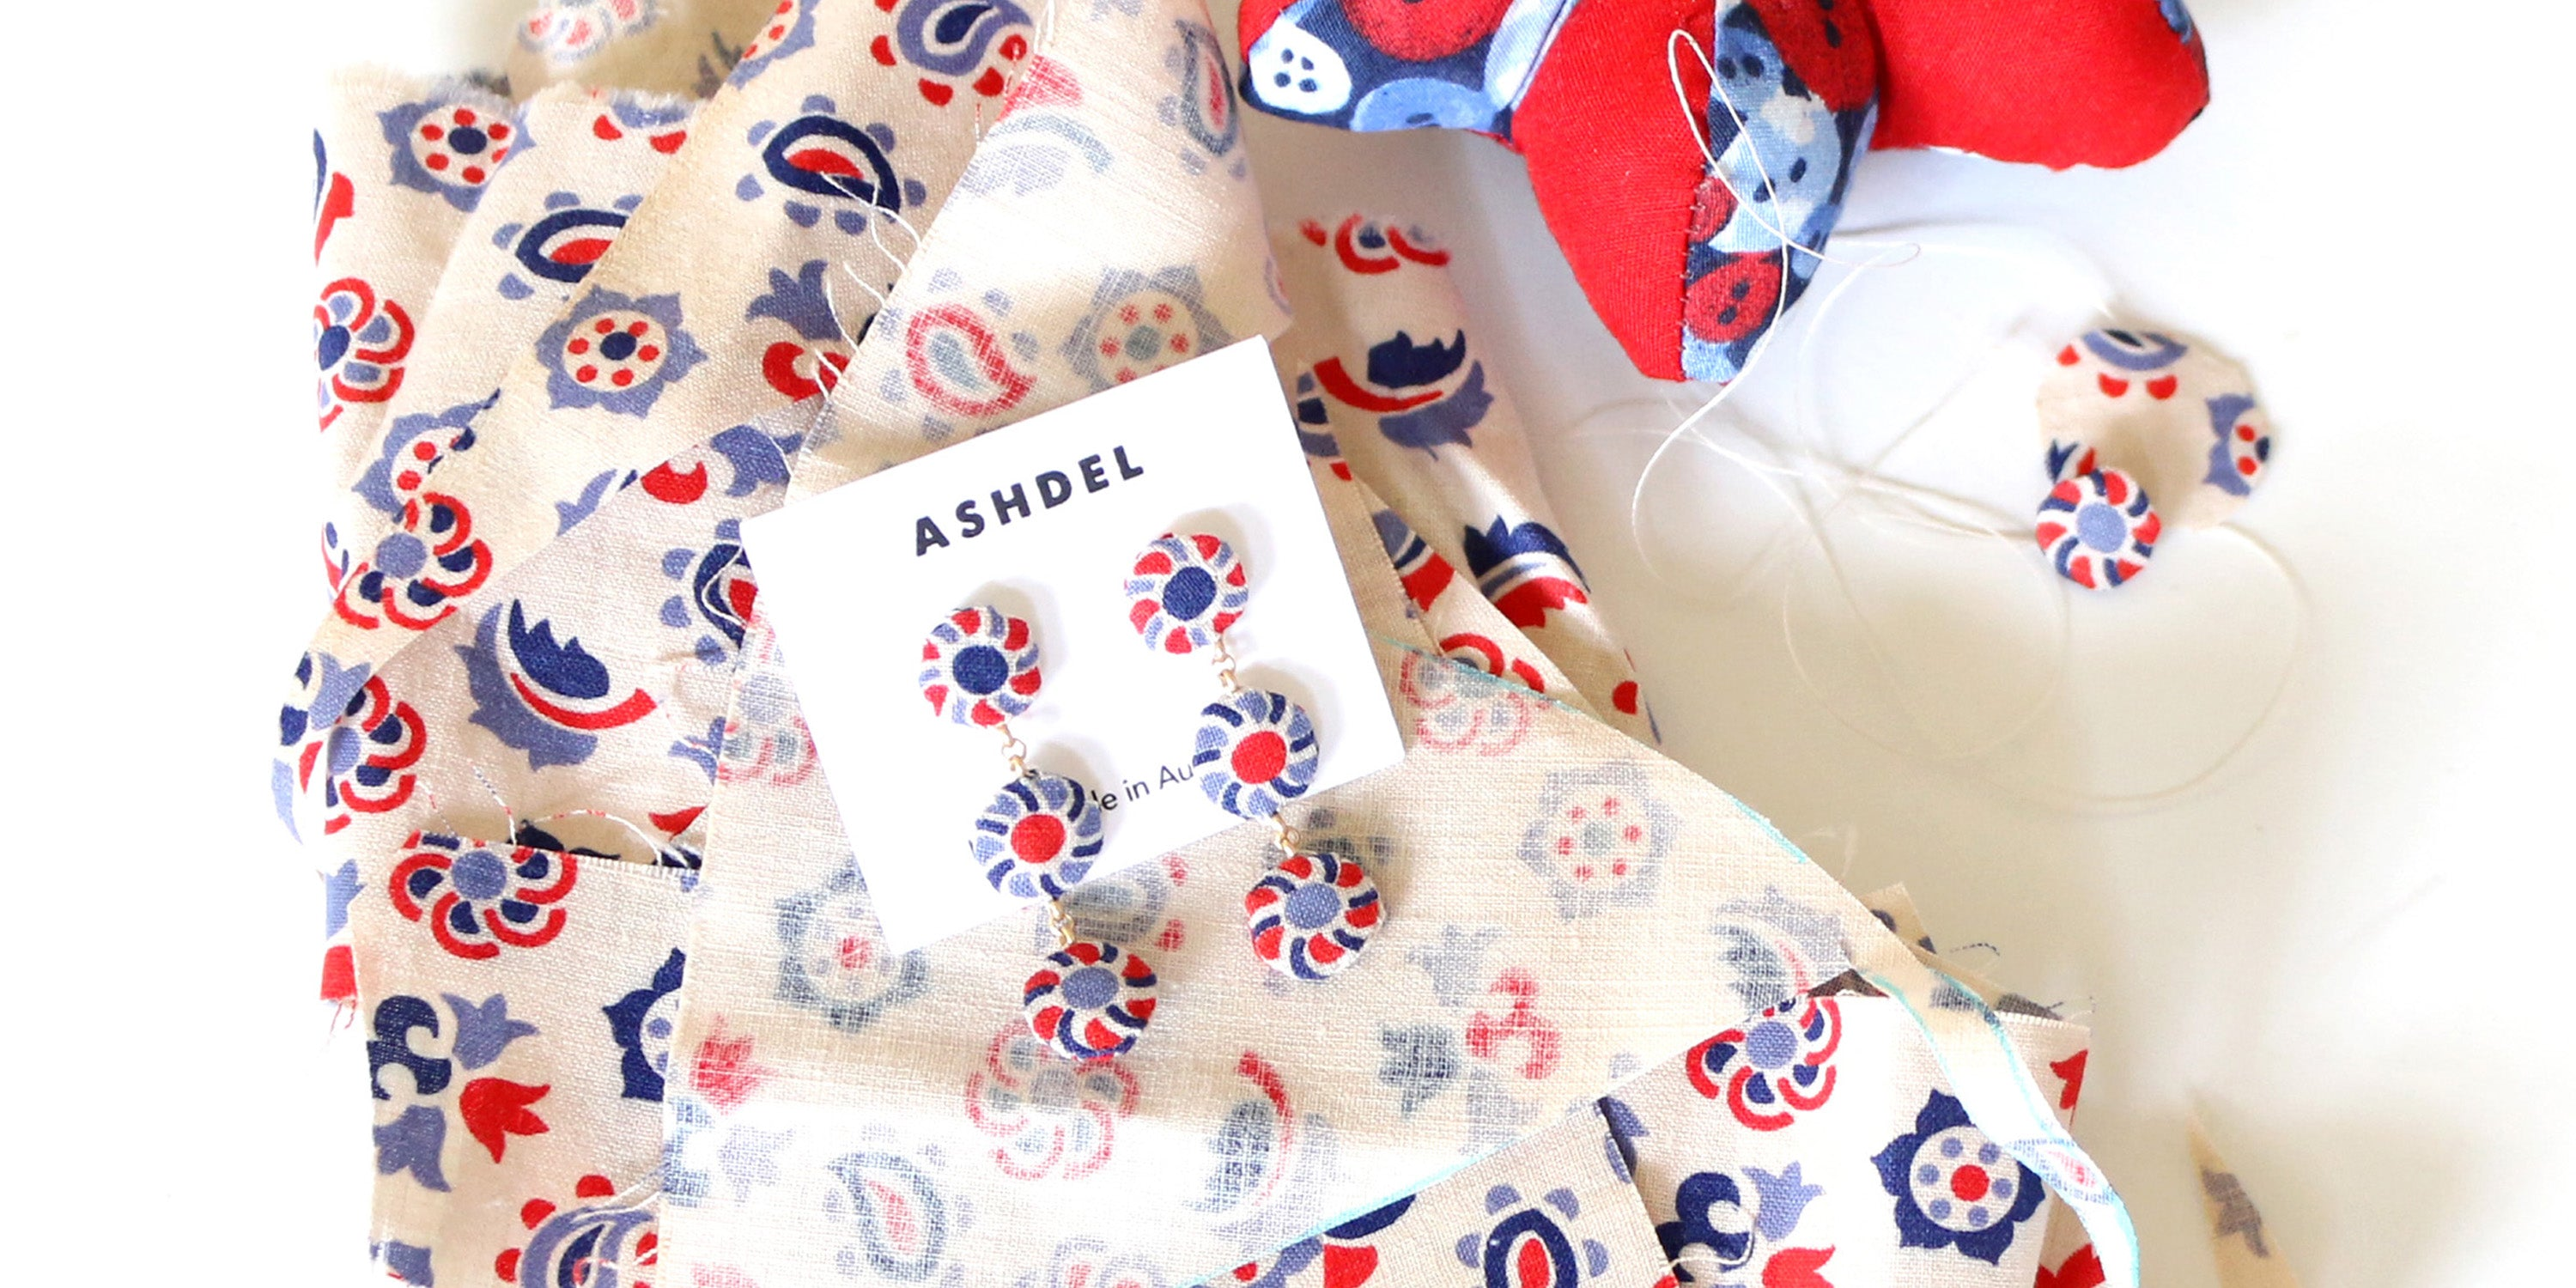 limited-collection-vintage-fabric-textile-jewelry-Ashdel